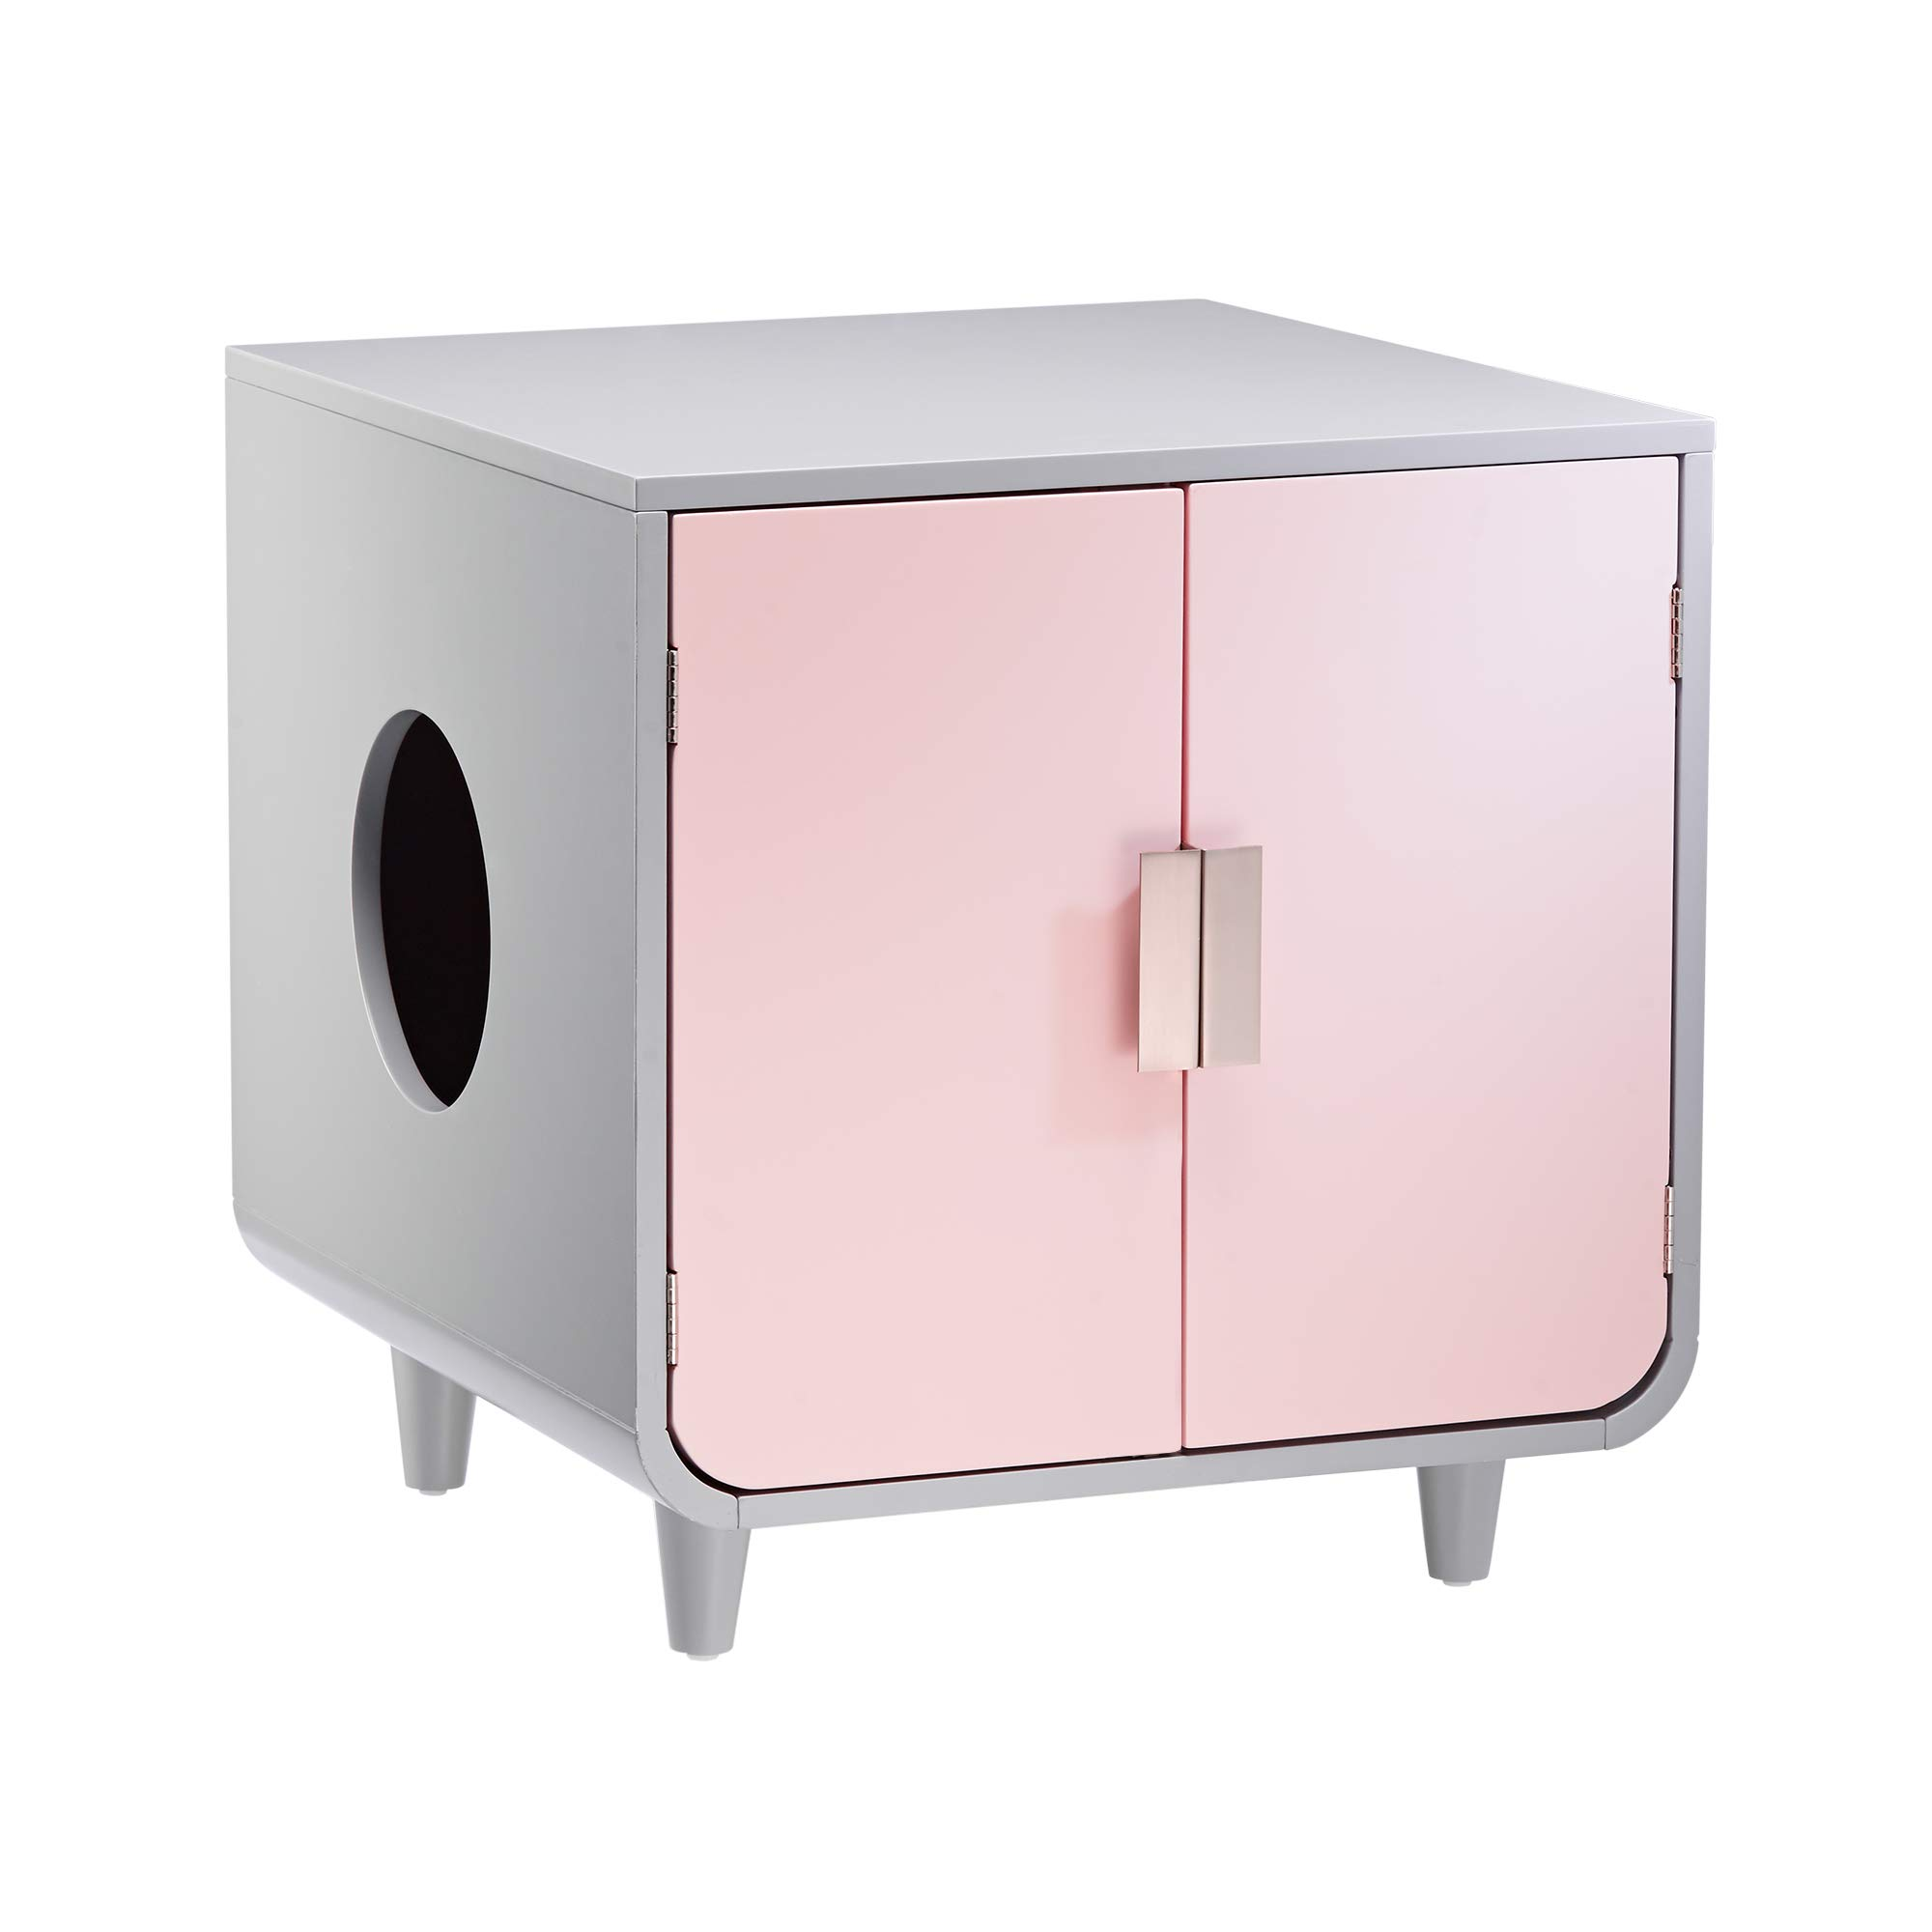 Staart - Dyad Wooden Cat Litter Box - Chablis Pink by Staart